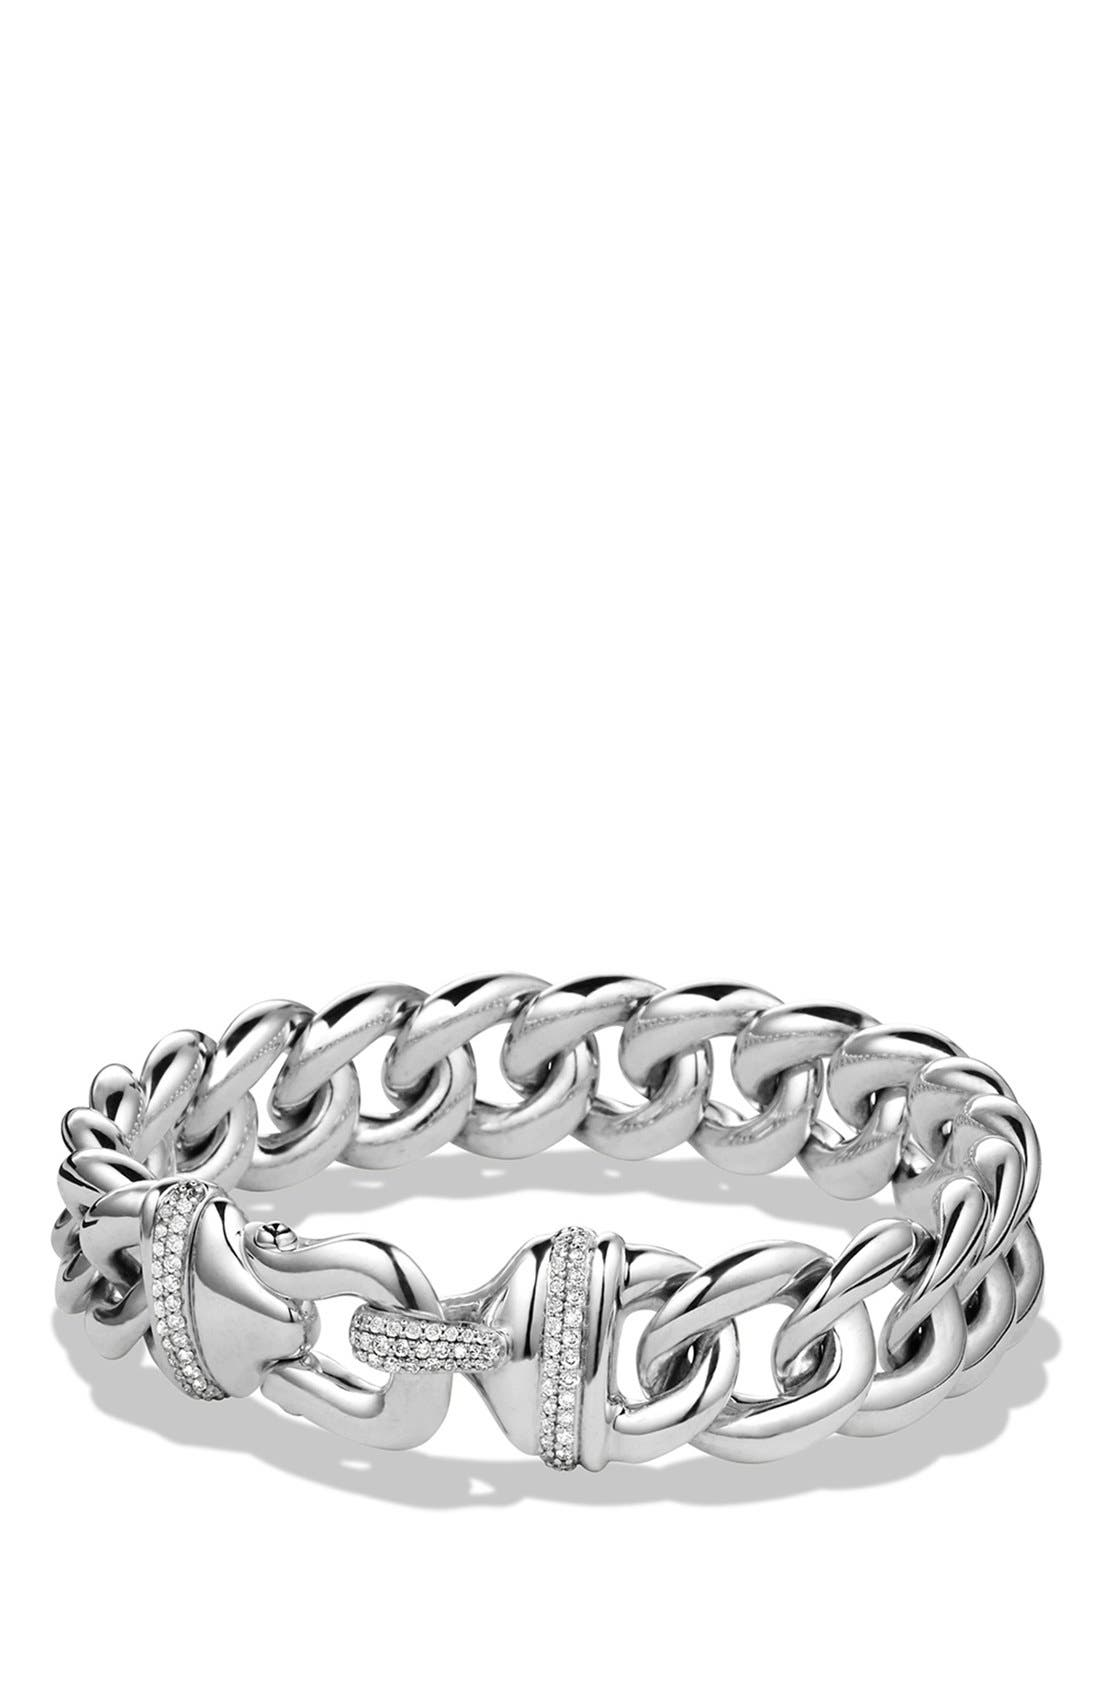 DAVID YURMAN 'Cable Buckle' Single-Row Bracelet with Diamonds